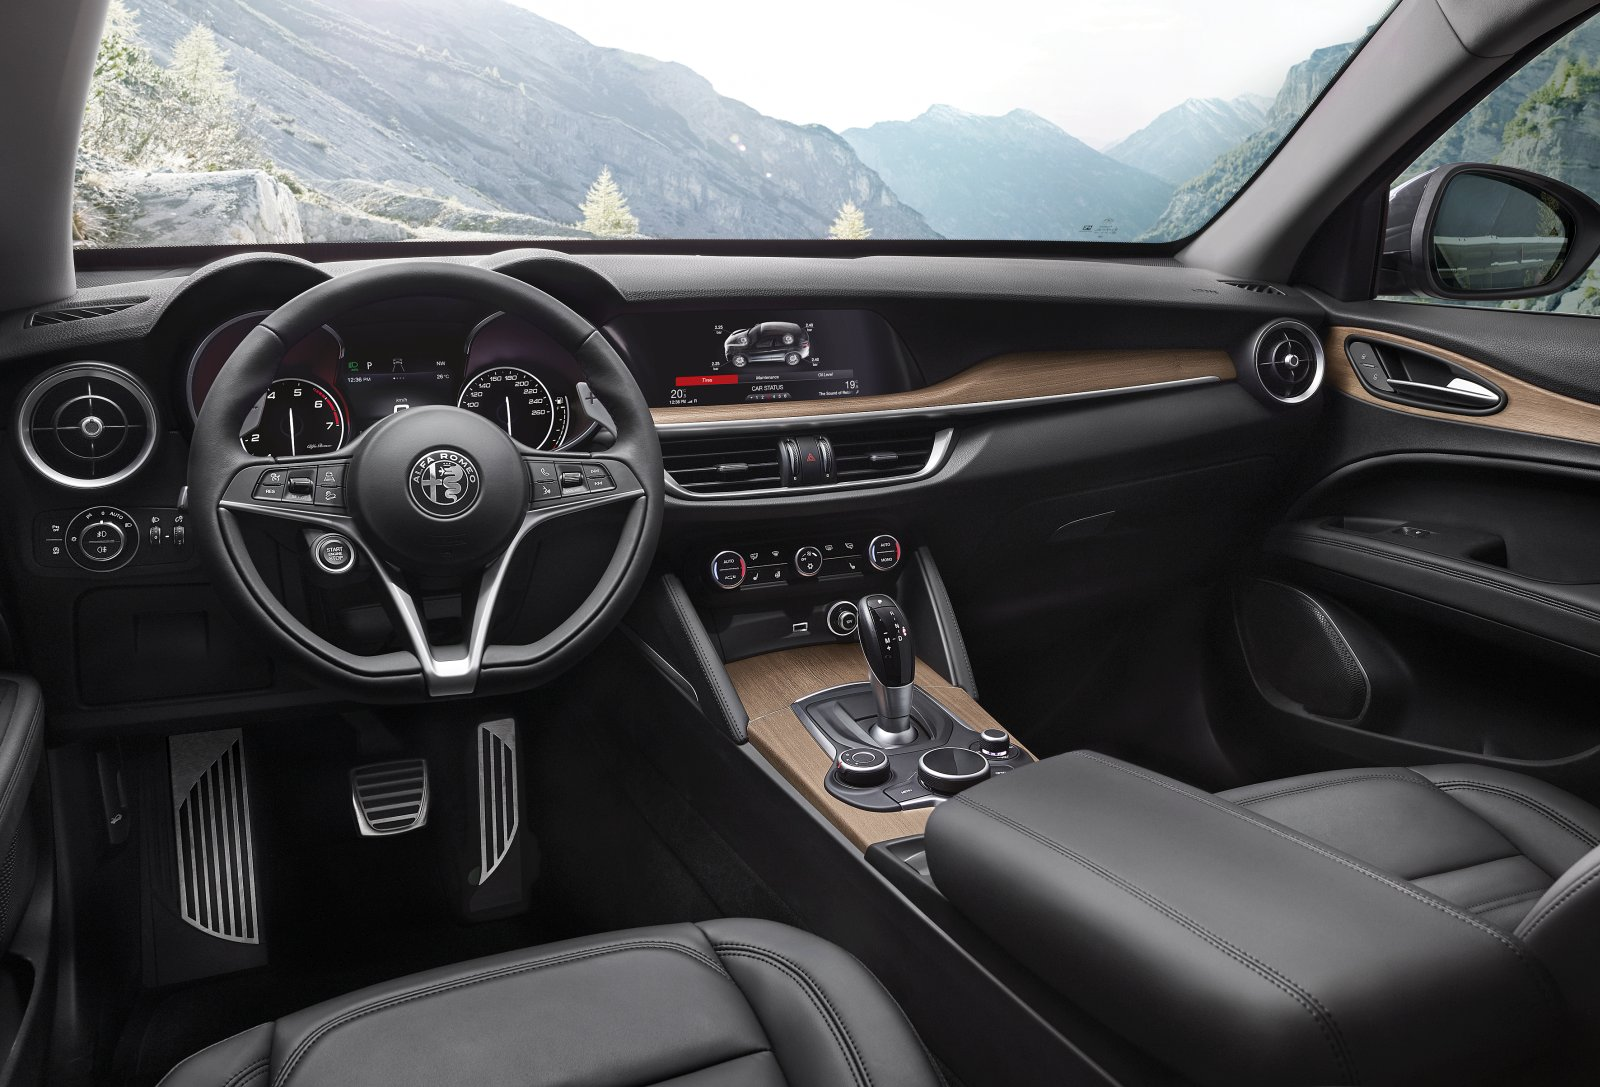 alfa romeo stelvio first edition vorgestellt alles auto. Black Bedroom Furniture Sets. Home Design Ideas